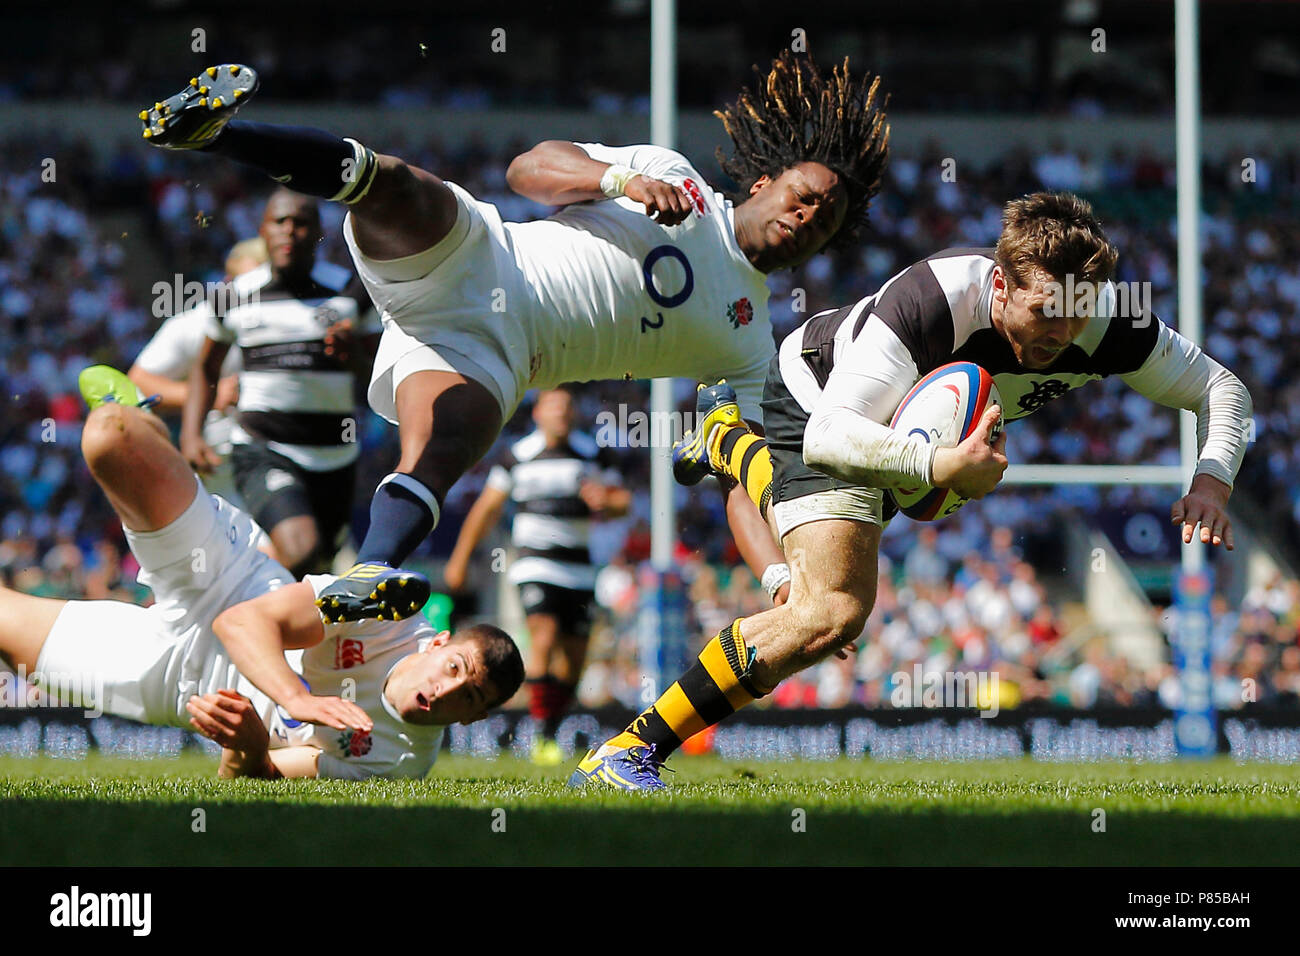 Elliot Daly fends of the tackle from Marland Yarde to score a try for the Barbarians during the England vs Barbarians match, at Twickenham Stadium, London. 26 May 2013 --- Image by © Paul Cunningham - Stock Image